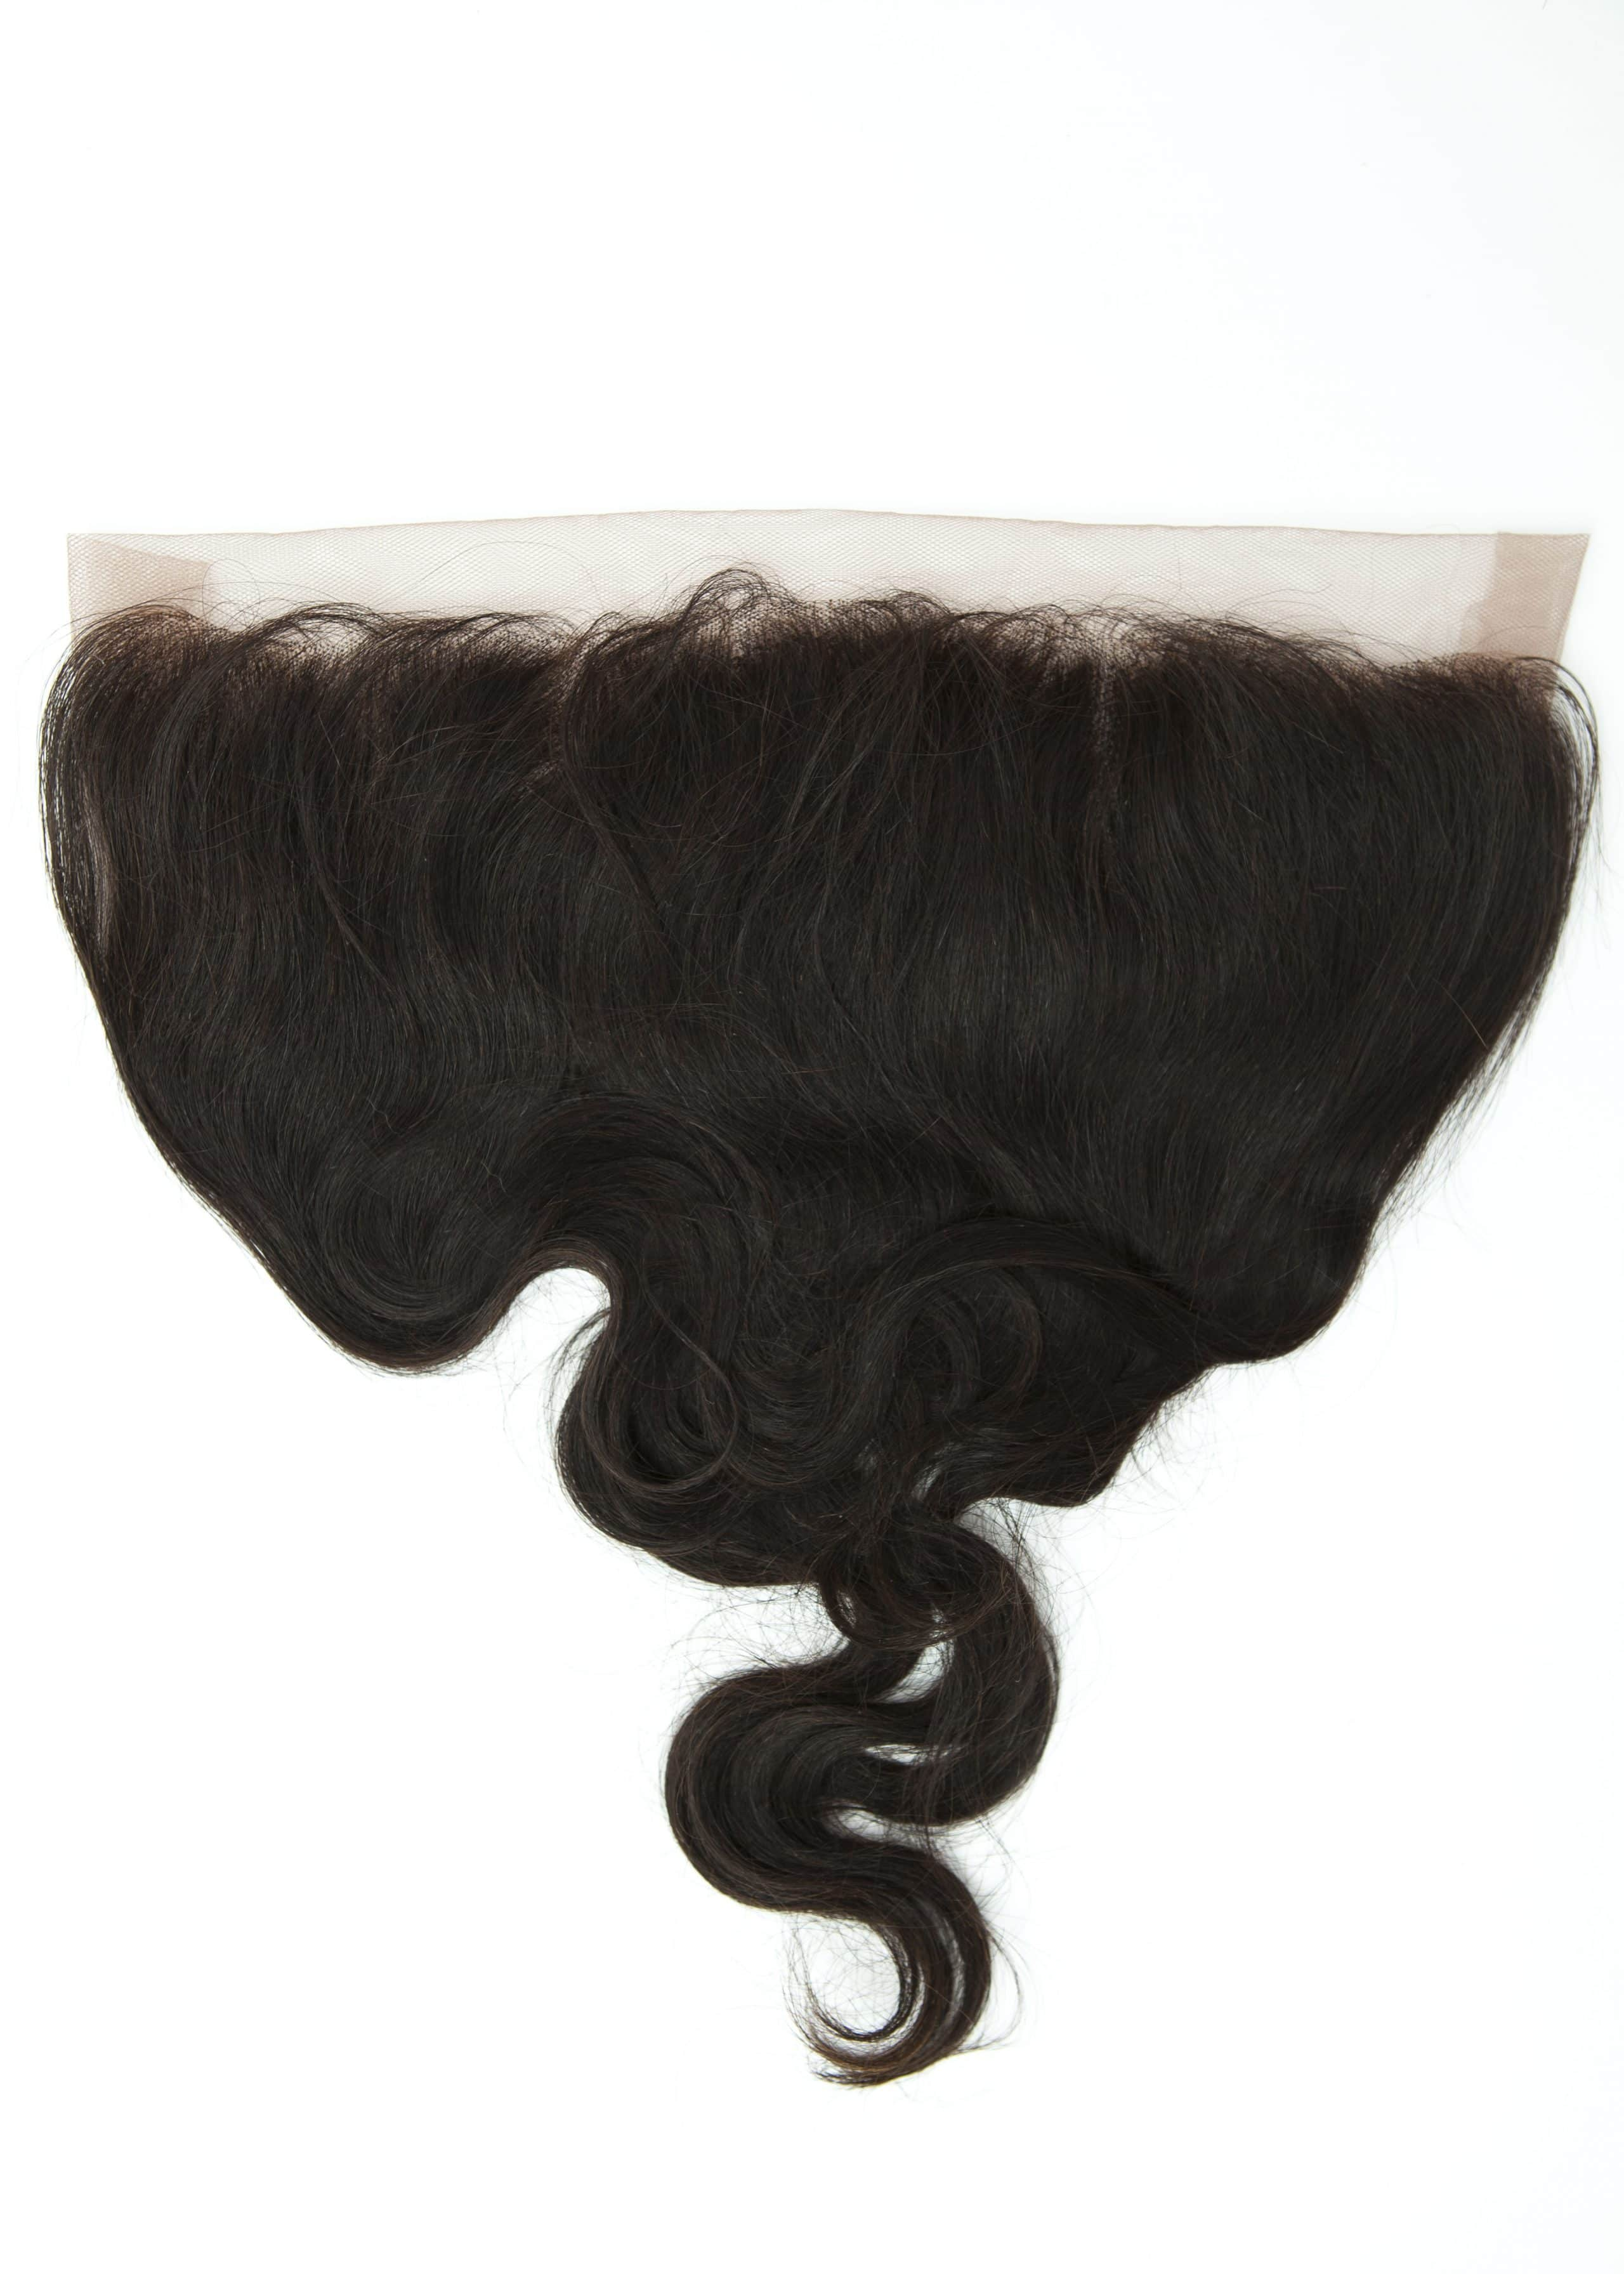 Lace frontal Hair Piece